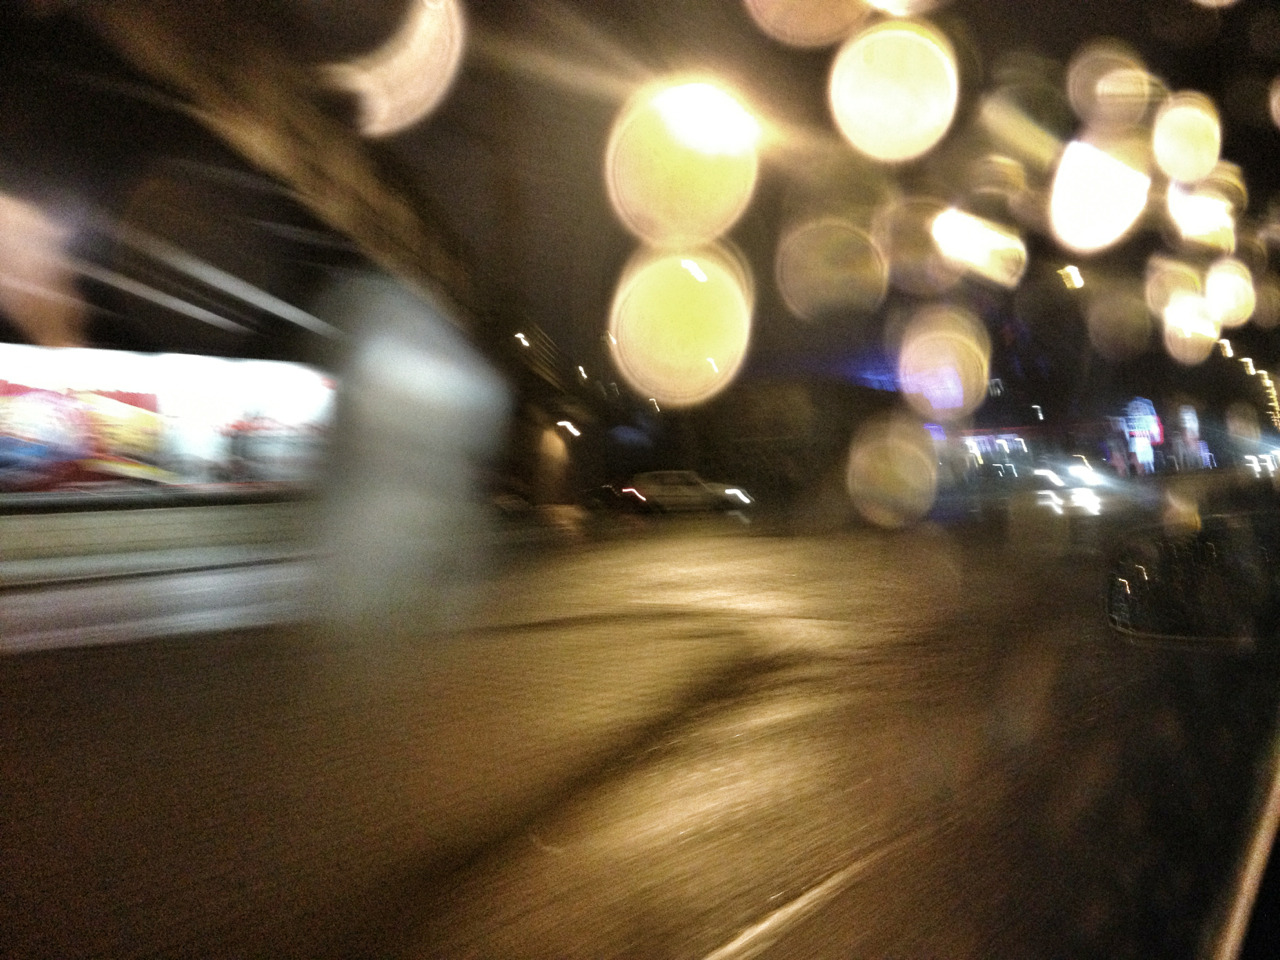 Bokeh and blur